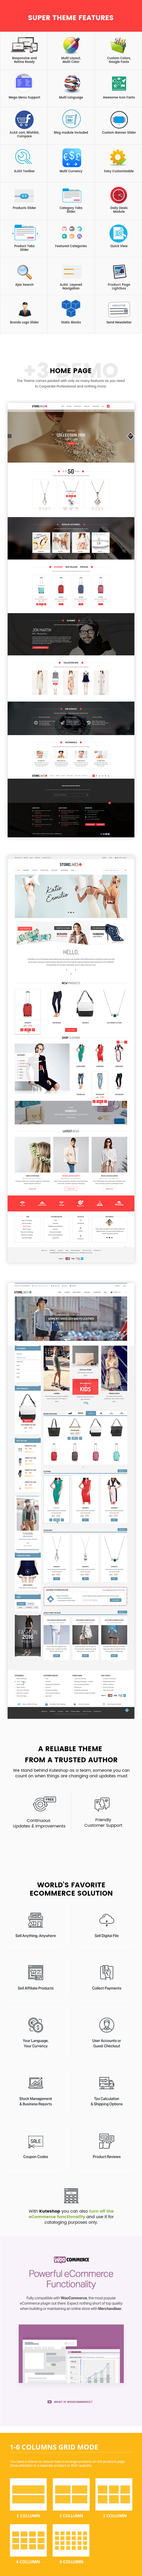 Storelikes - Fashion RTL Responsives WooCommerce-WordPress-Layout - 4